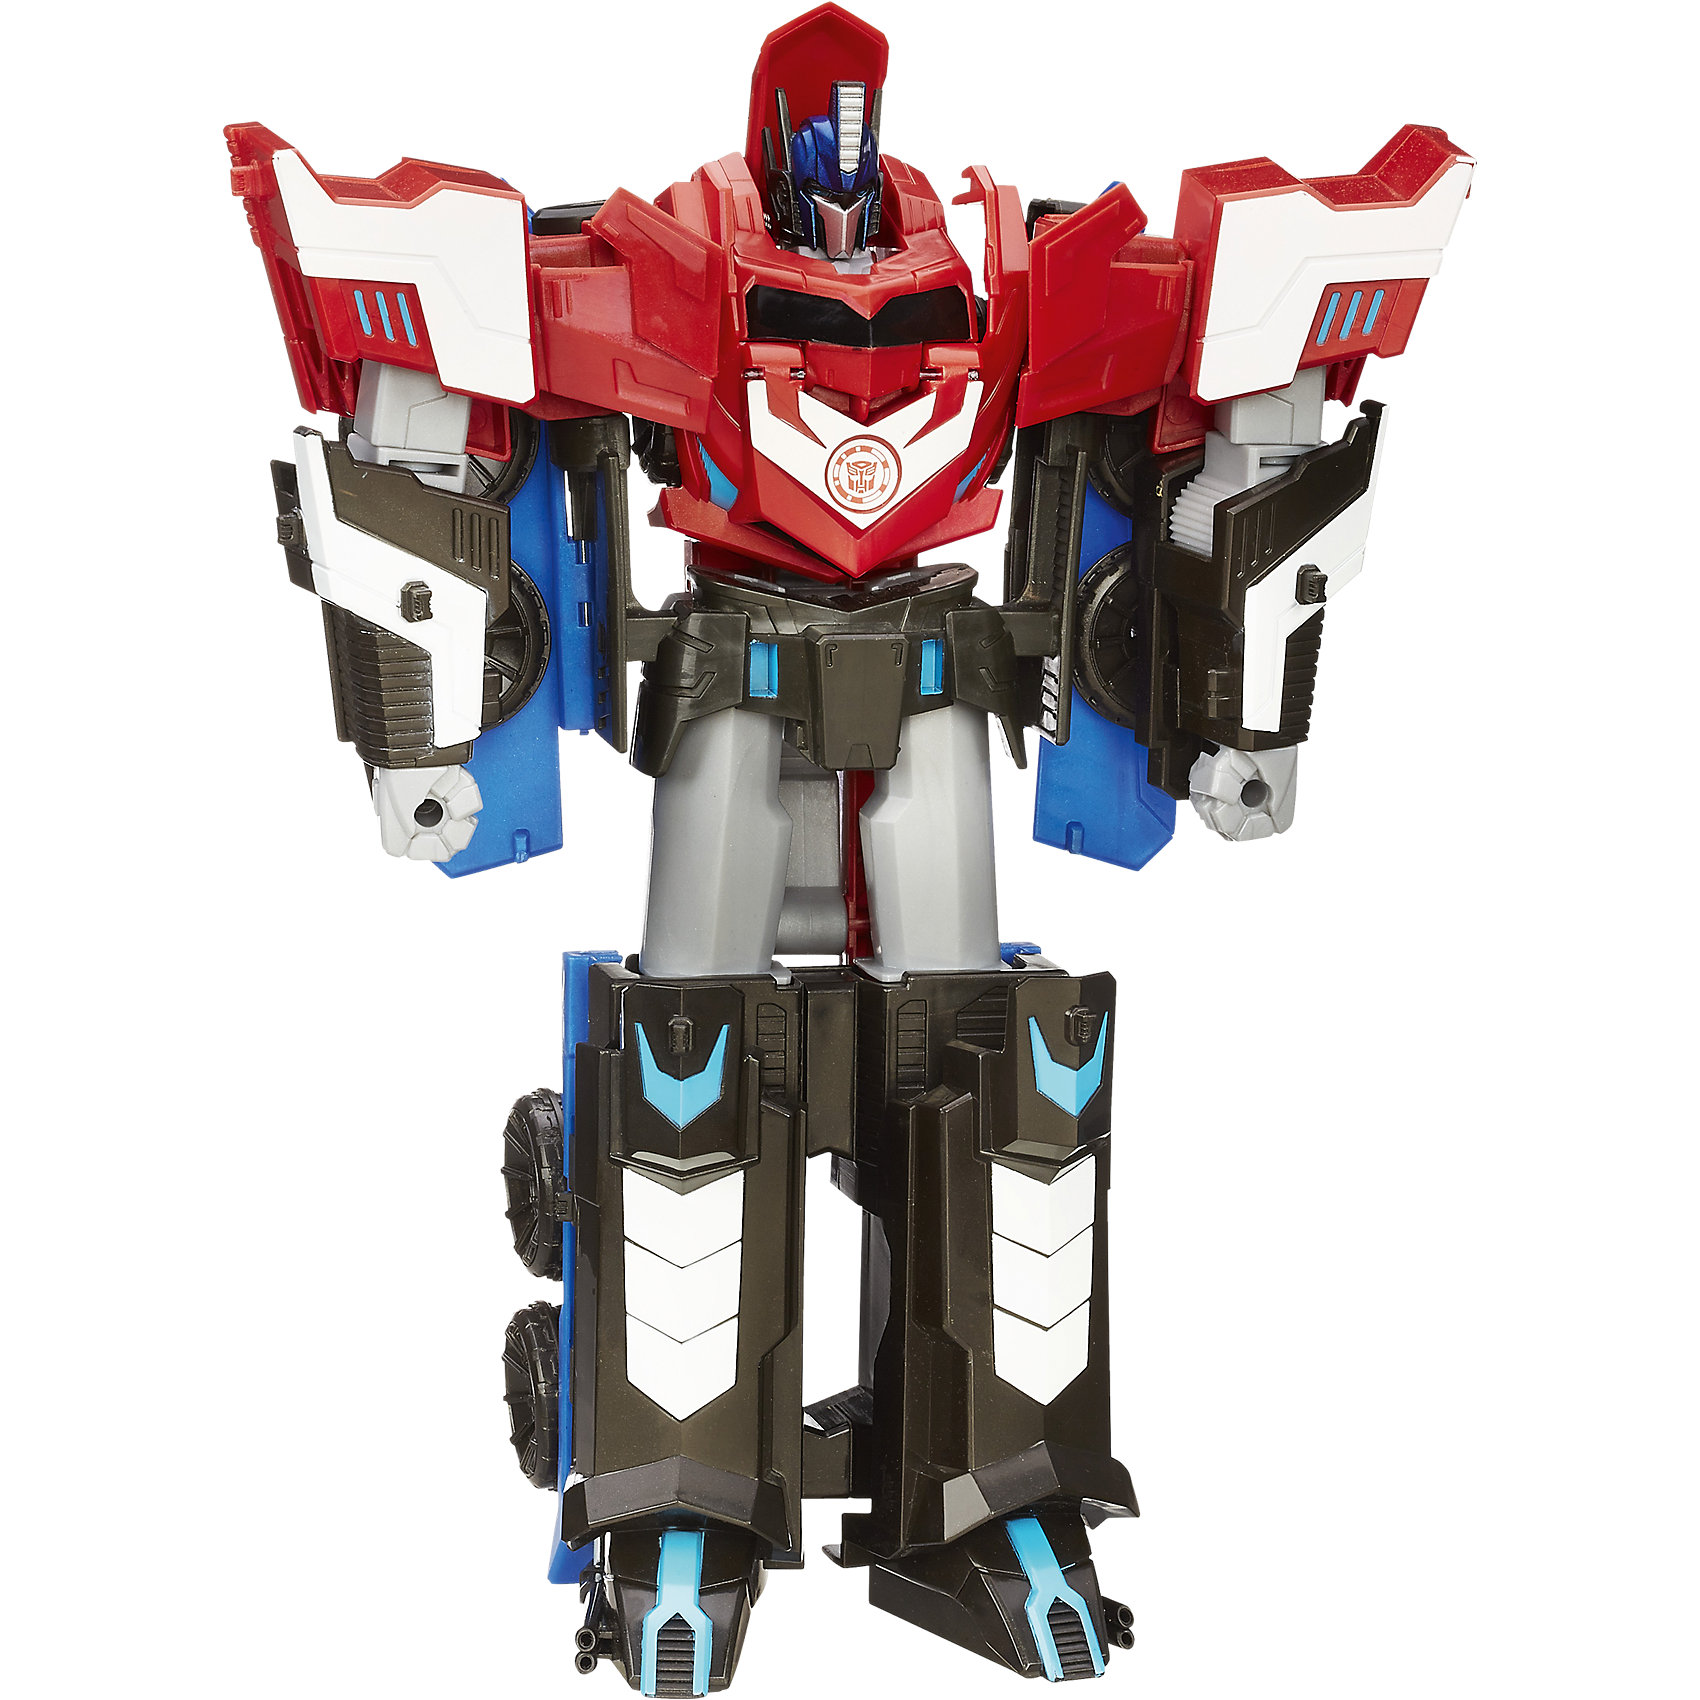 Hasbro МЕГА Оптимус Прайм, Роботс-ин-Дисгайз, Трансформеры hasbro hasbro трансформеры robots in disguise autobot drift